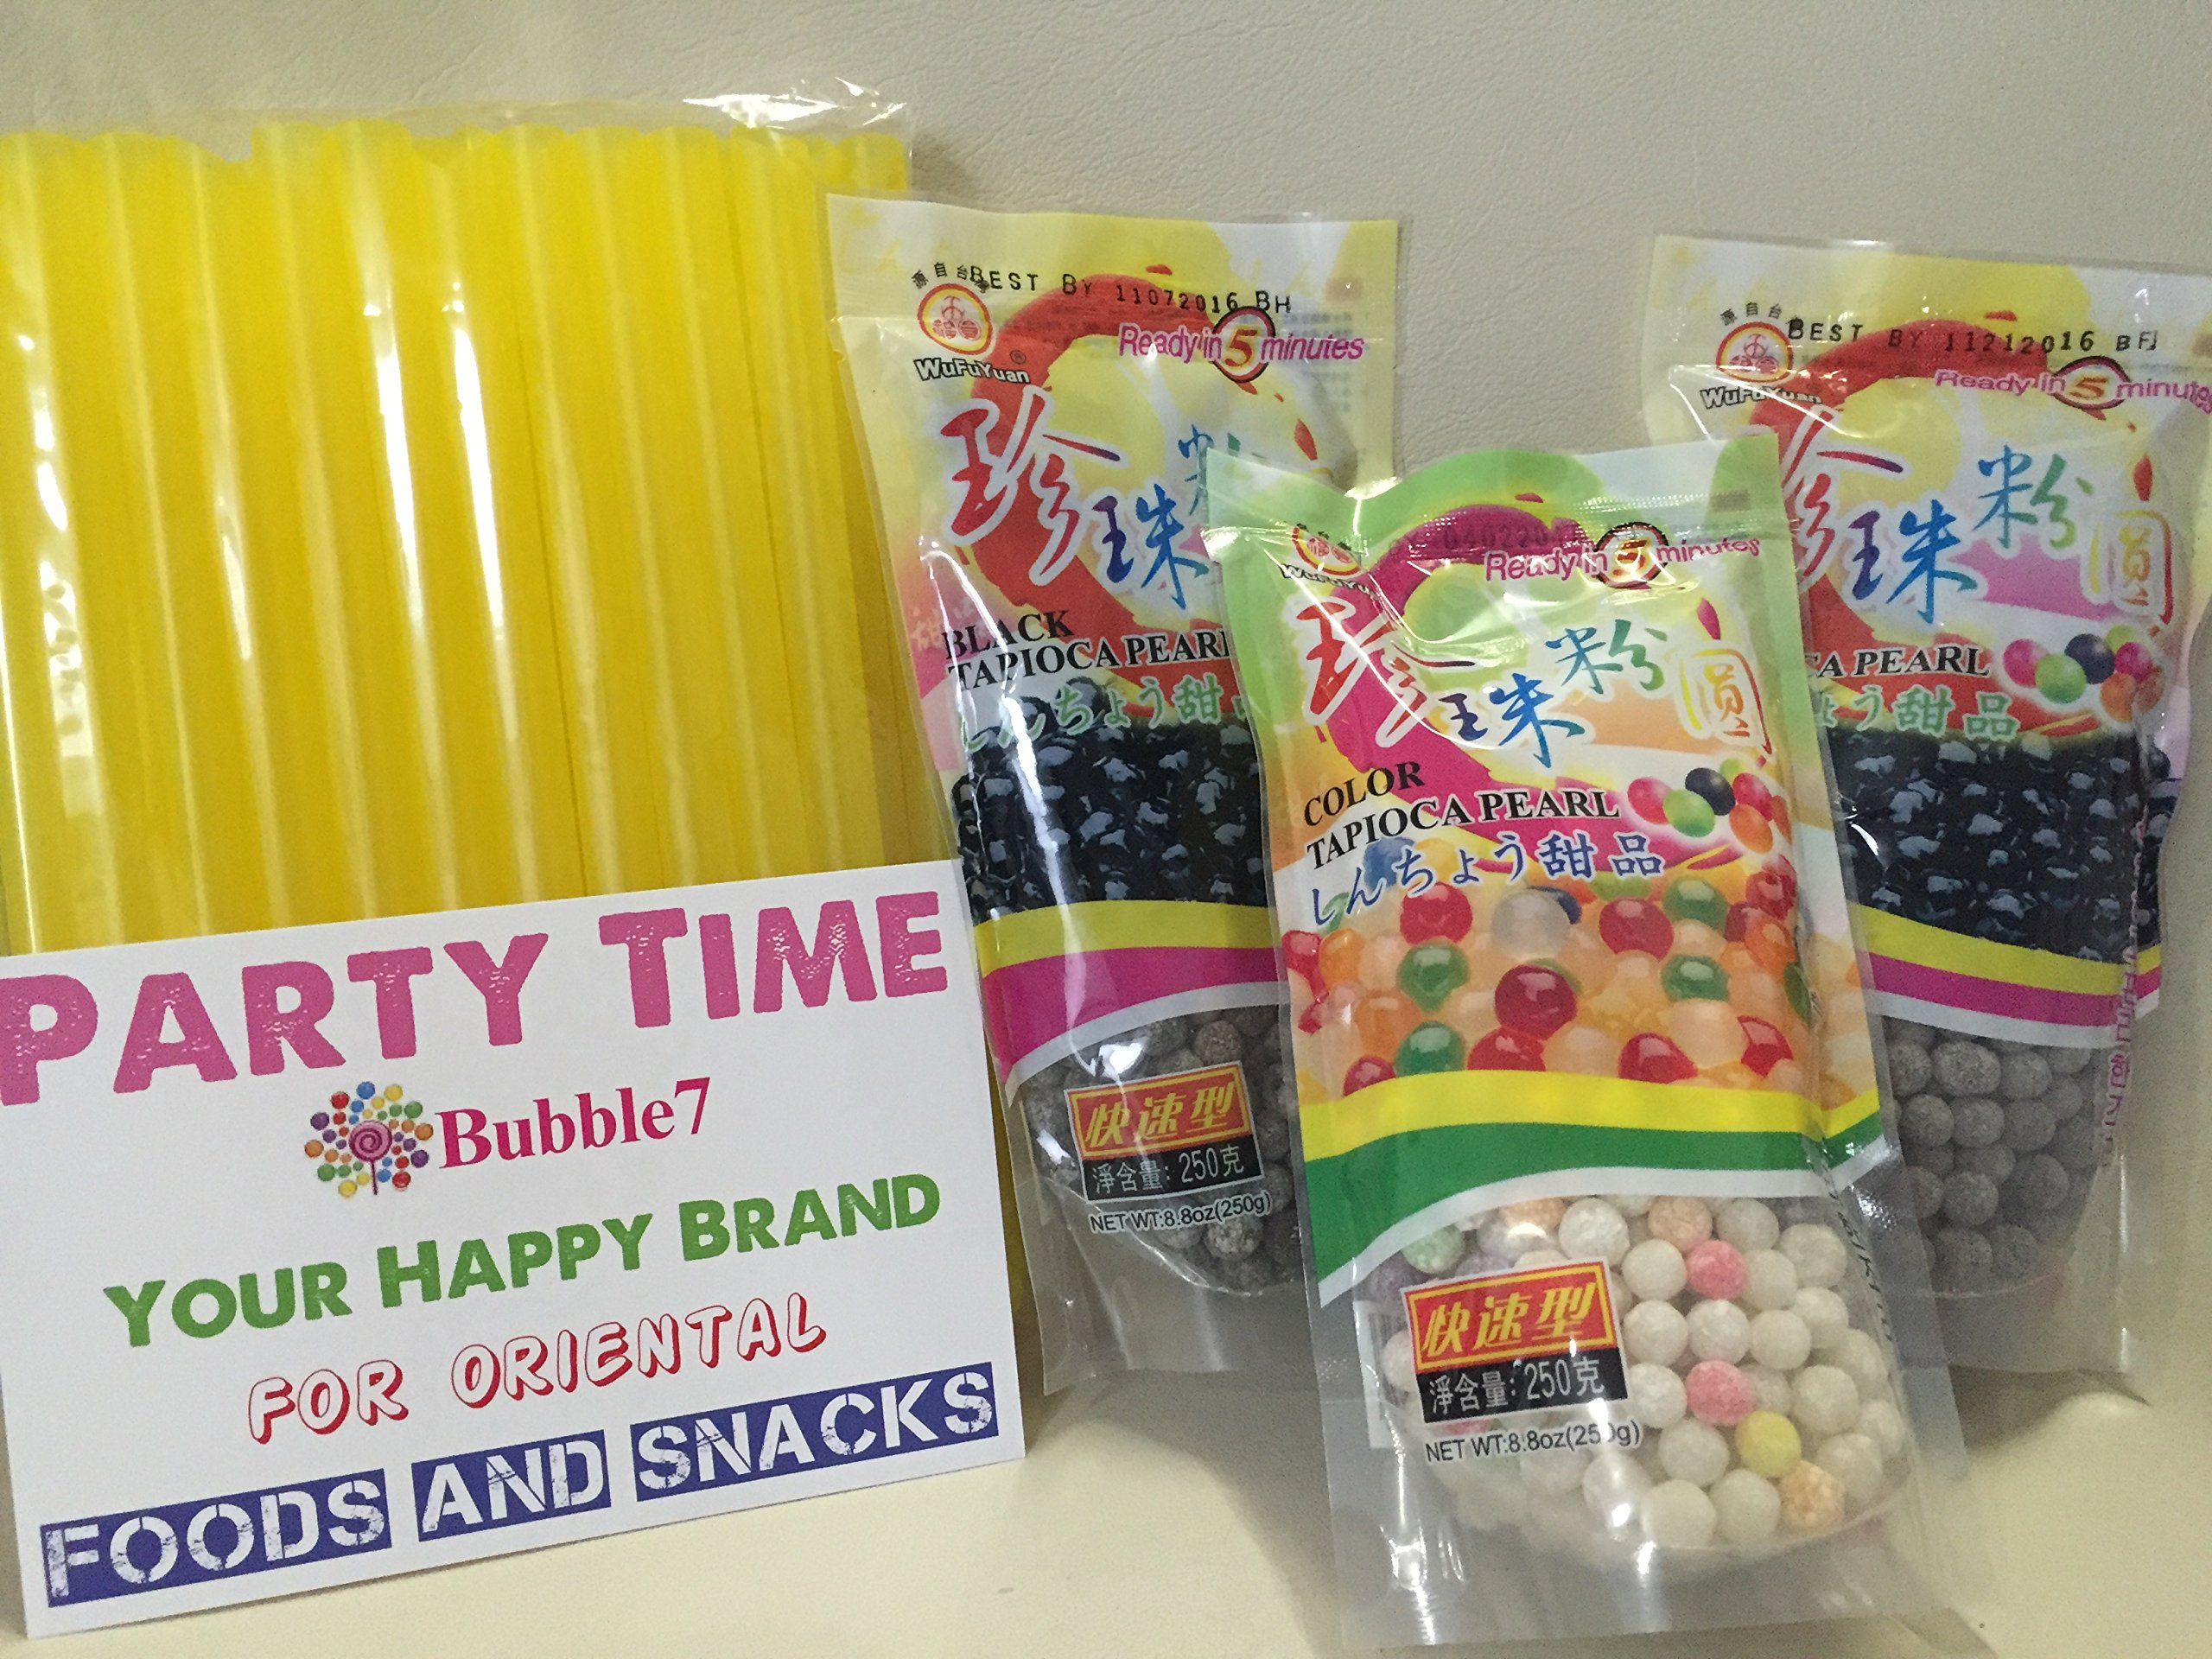 3 Packs Total of BOBA Tapioca Pearl ''Bubble Tea Ingredients'', 2 packs of (Black), Plus 1 Pack of (Color) Pearl Bubble,With Additonal 1 Pack of 50 BOBA STRAWs (Variety Color) by WuFuYuan (Party Time)